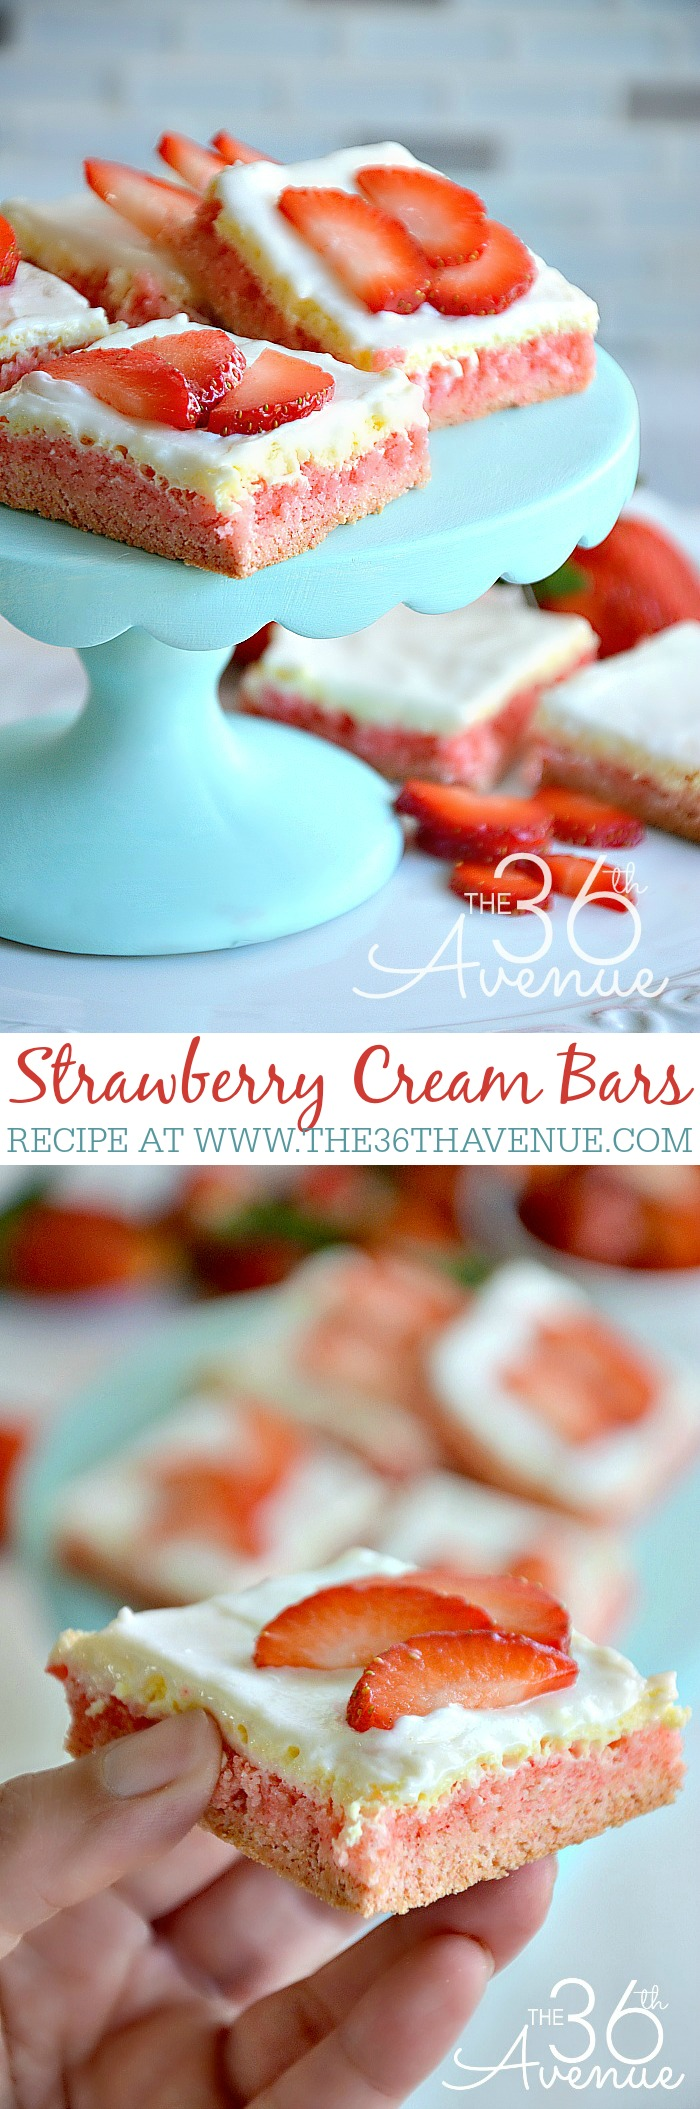 Strawberry Cream Bar Recipe by the36thavenue.com